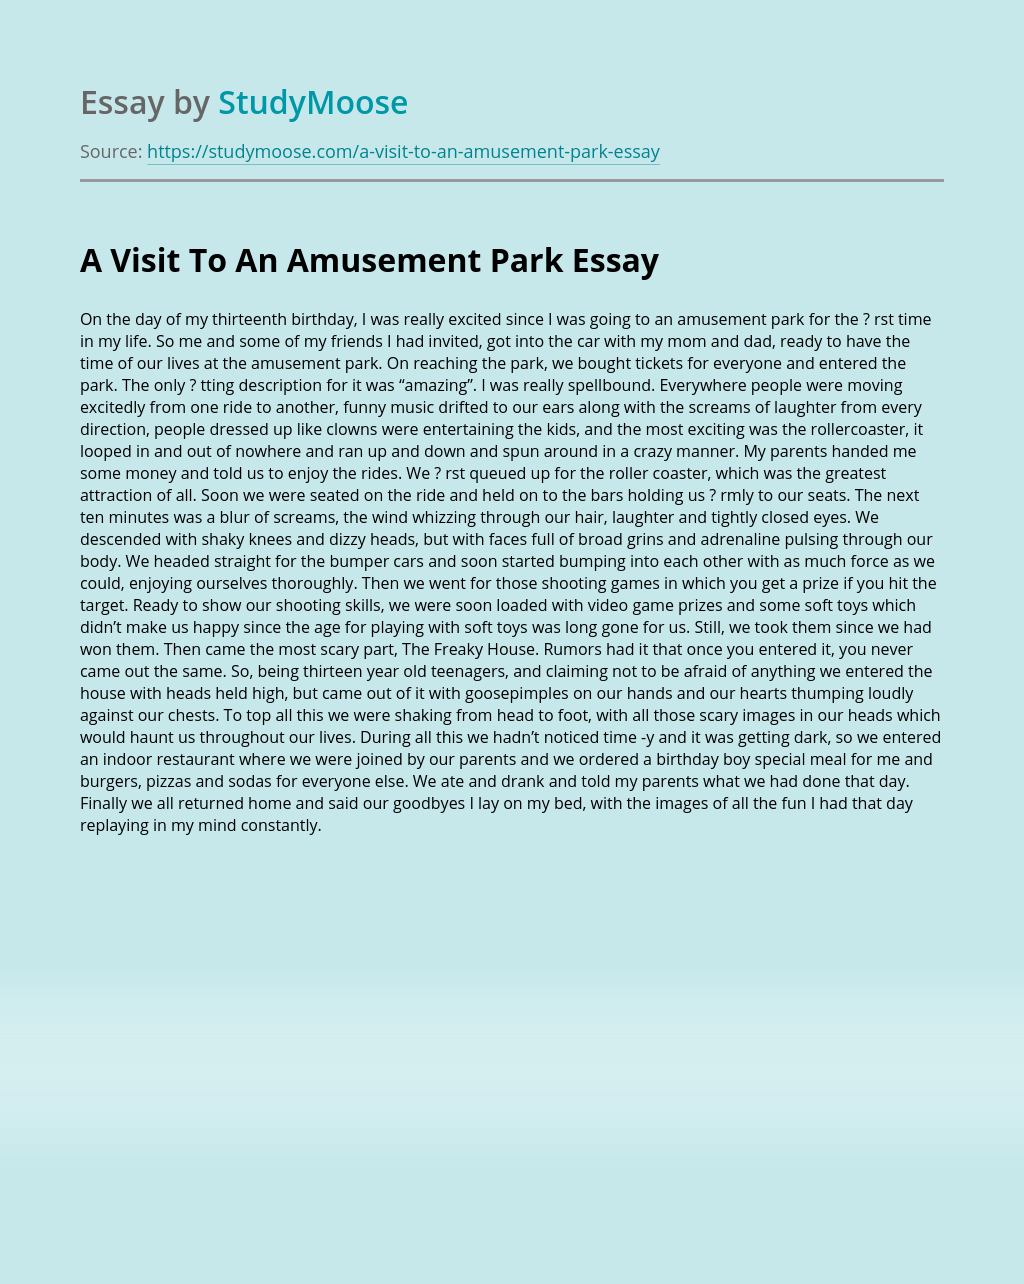 Fun at the amusement park essay help with my cheap critical analysis essay on civil war